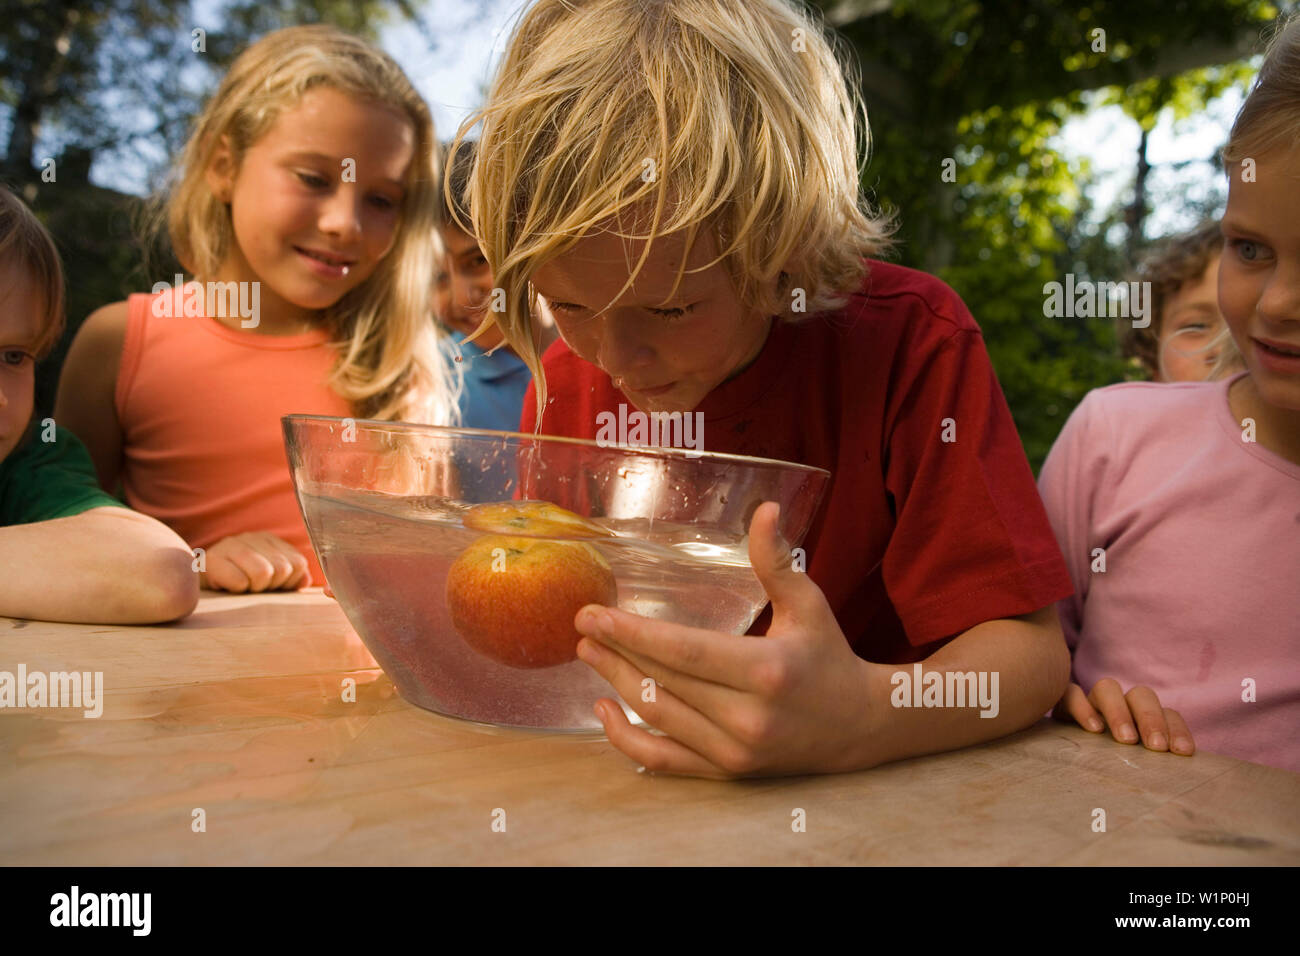 Boy with wet hair bending over a dish with water and an apple, children's birthday party - Stock Image